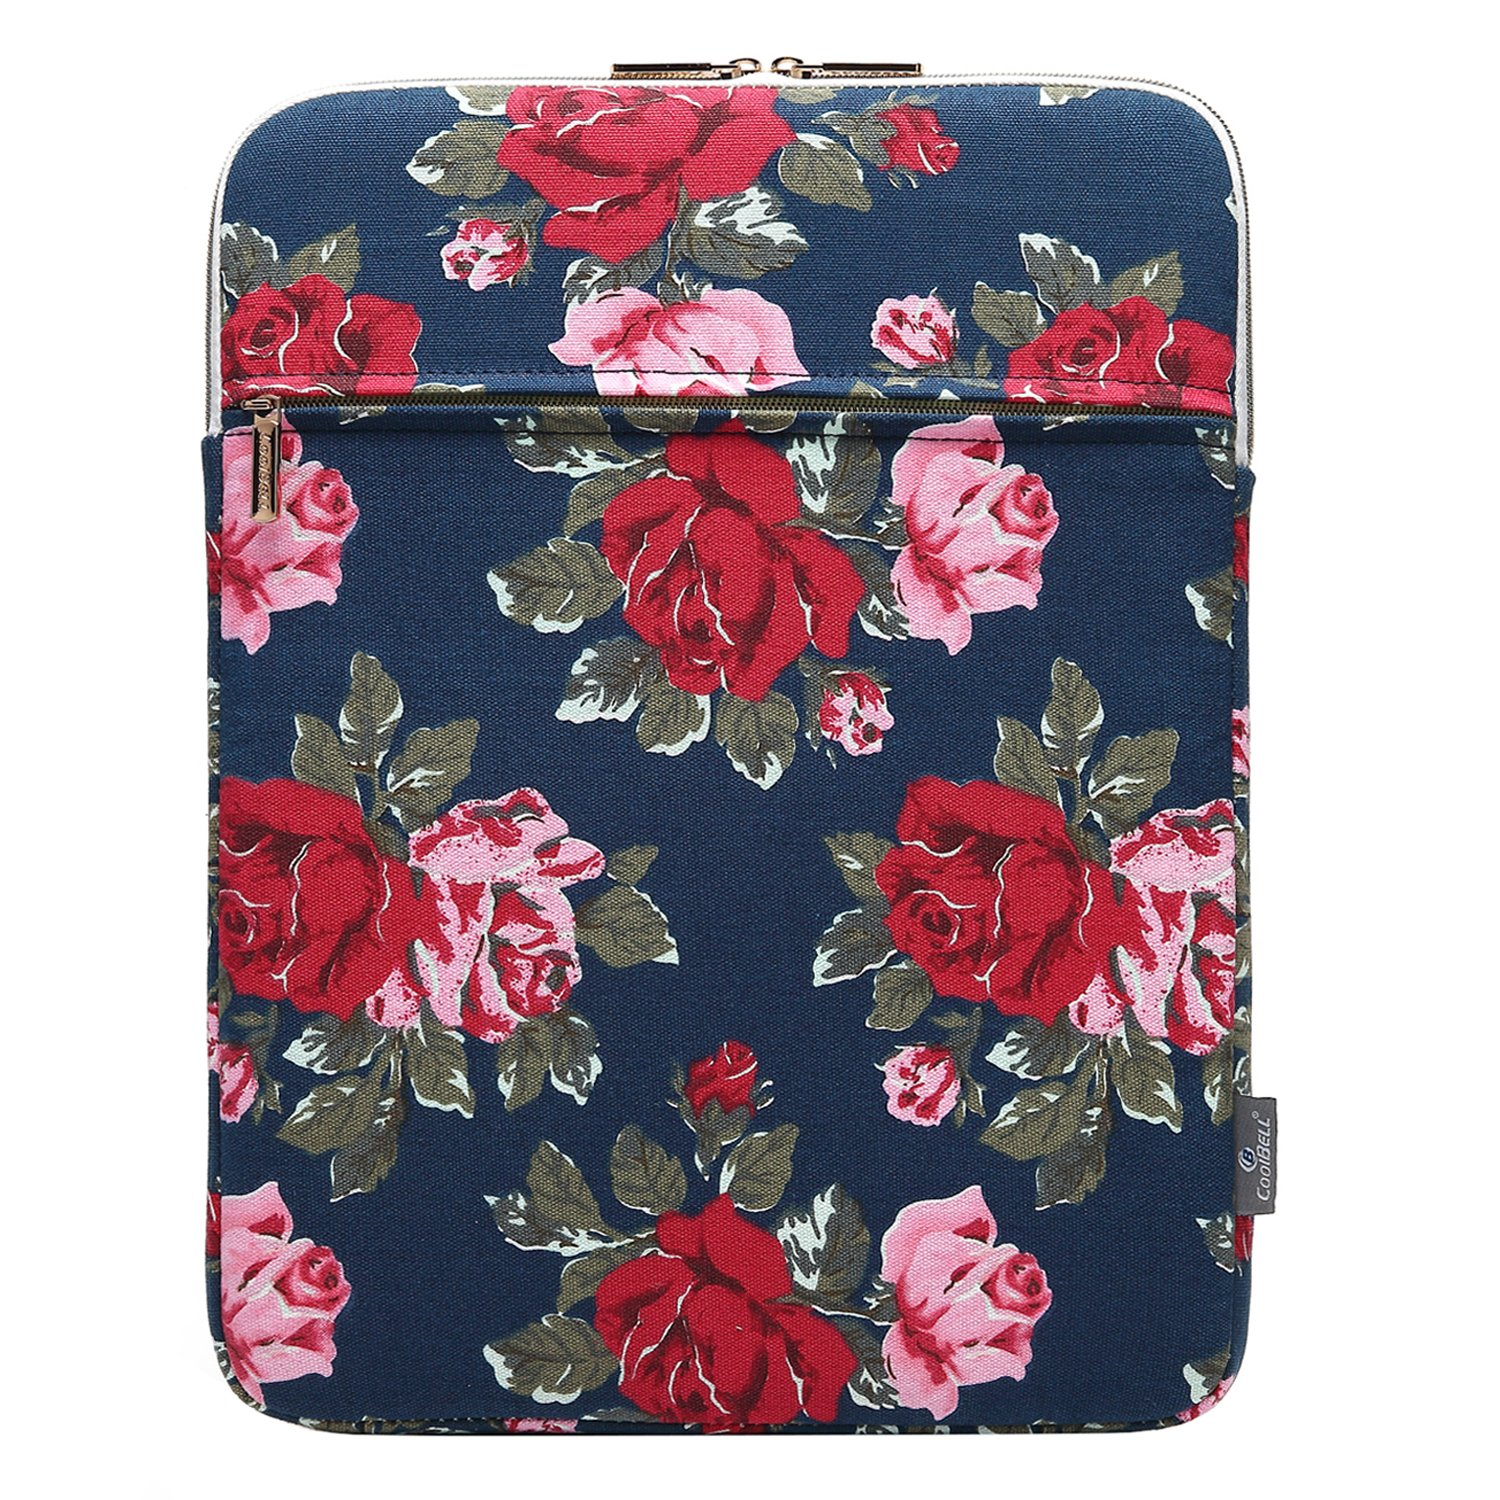 CoolBELL 12.9 Inch iPad Pro Sleeve Case Surface Pro 4 Cover With Accessory Pocket Fabric Sleeve Canvas Bag Exclusive For iPad Pro/Surface Pro 4/12'' New Macbook (New Peony Flower)